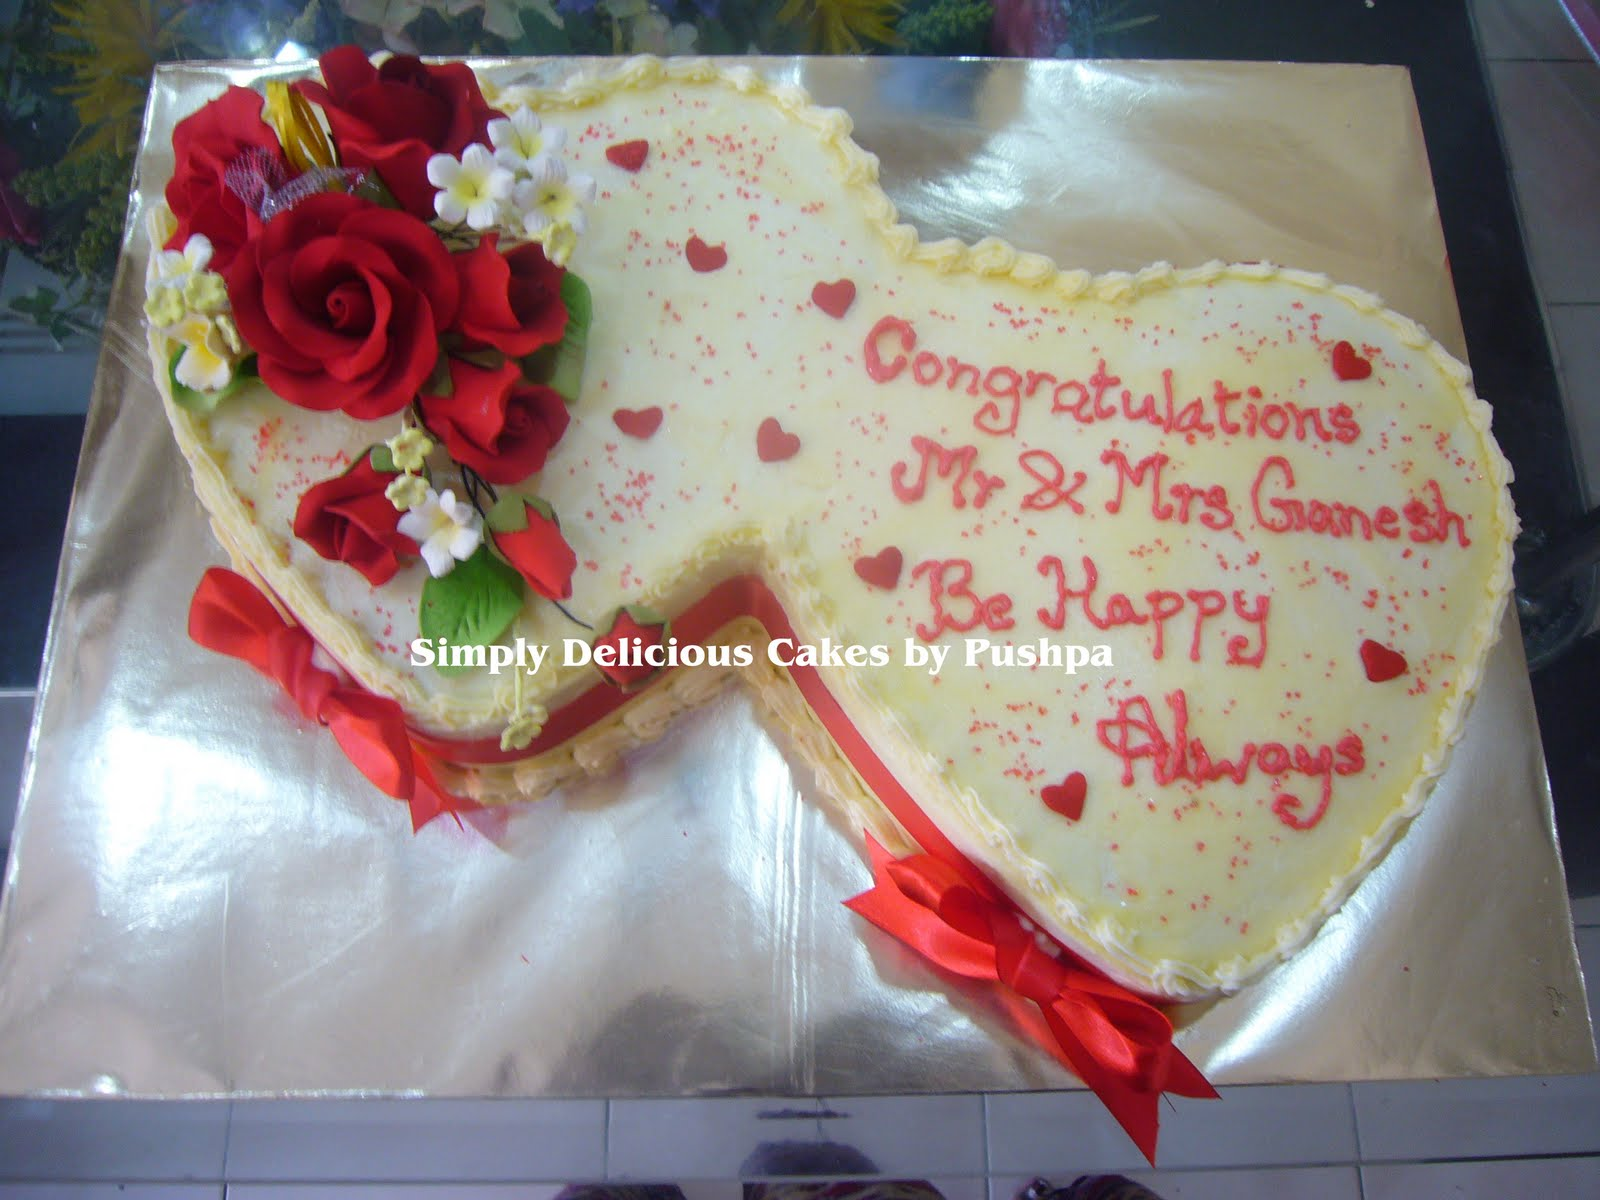 Cake Images For Yogesh : SIMPLY DELICIOUS CAKES: Gift a Cake